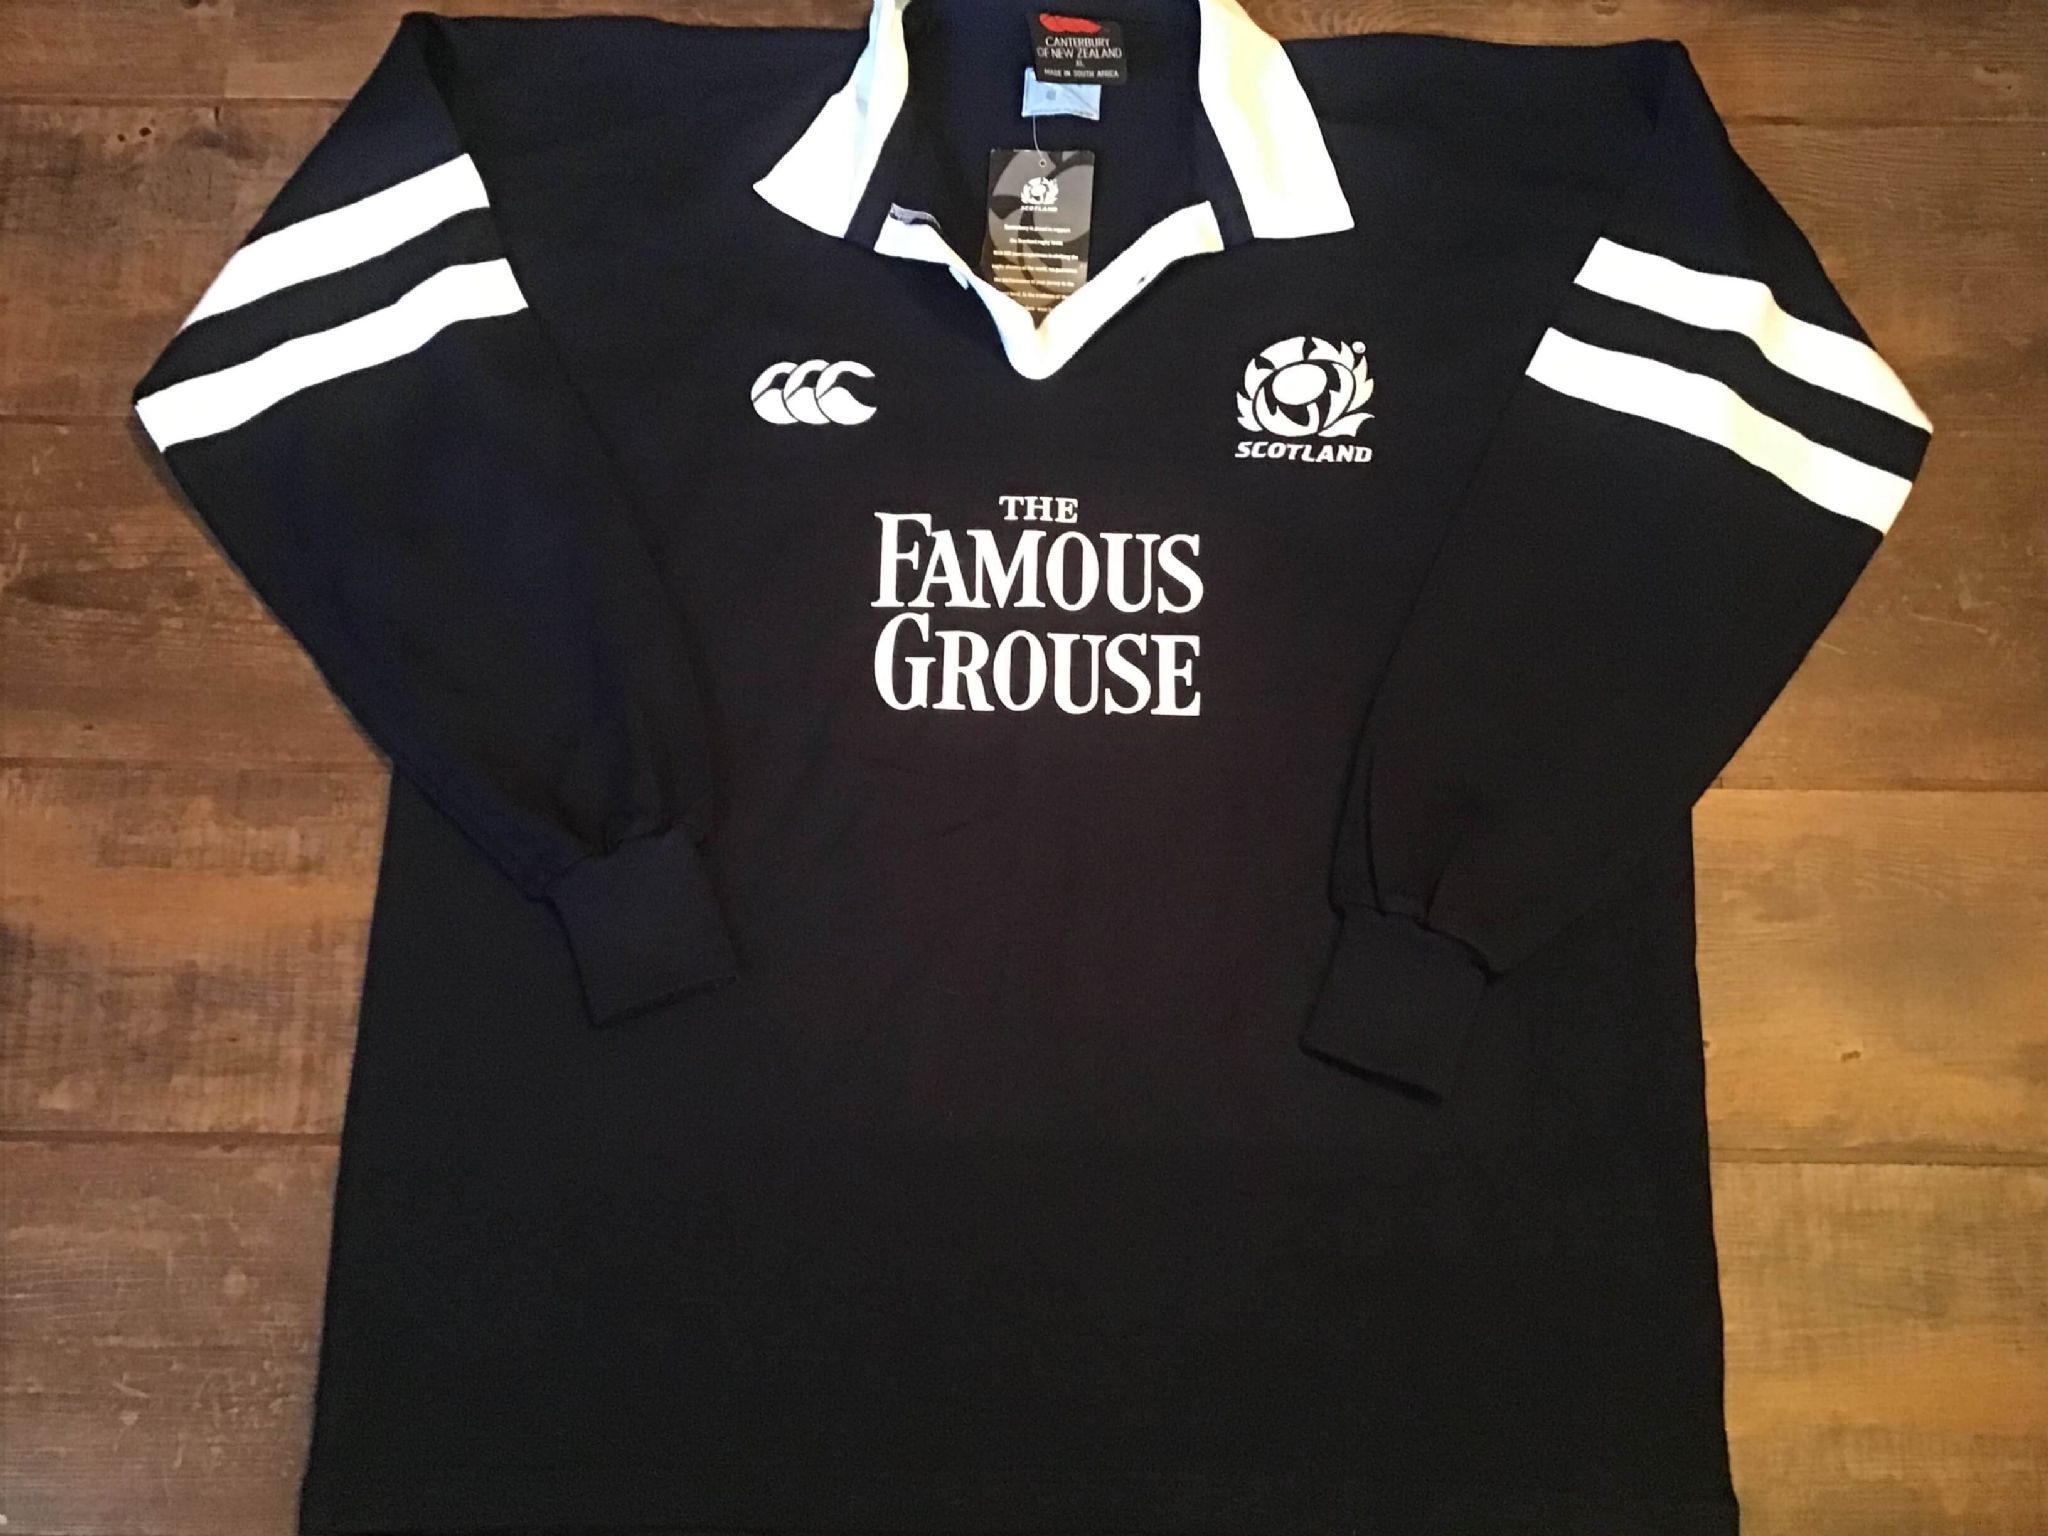 5eeb0660d50 Classic Rugby Shirts | 2002 Scotland Vintage Old Jerseys